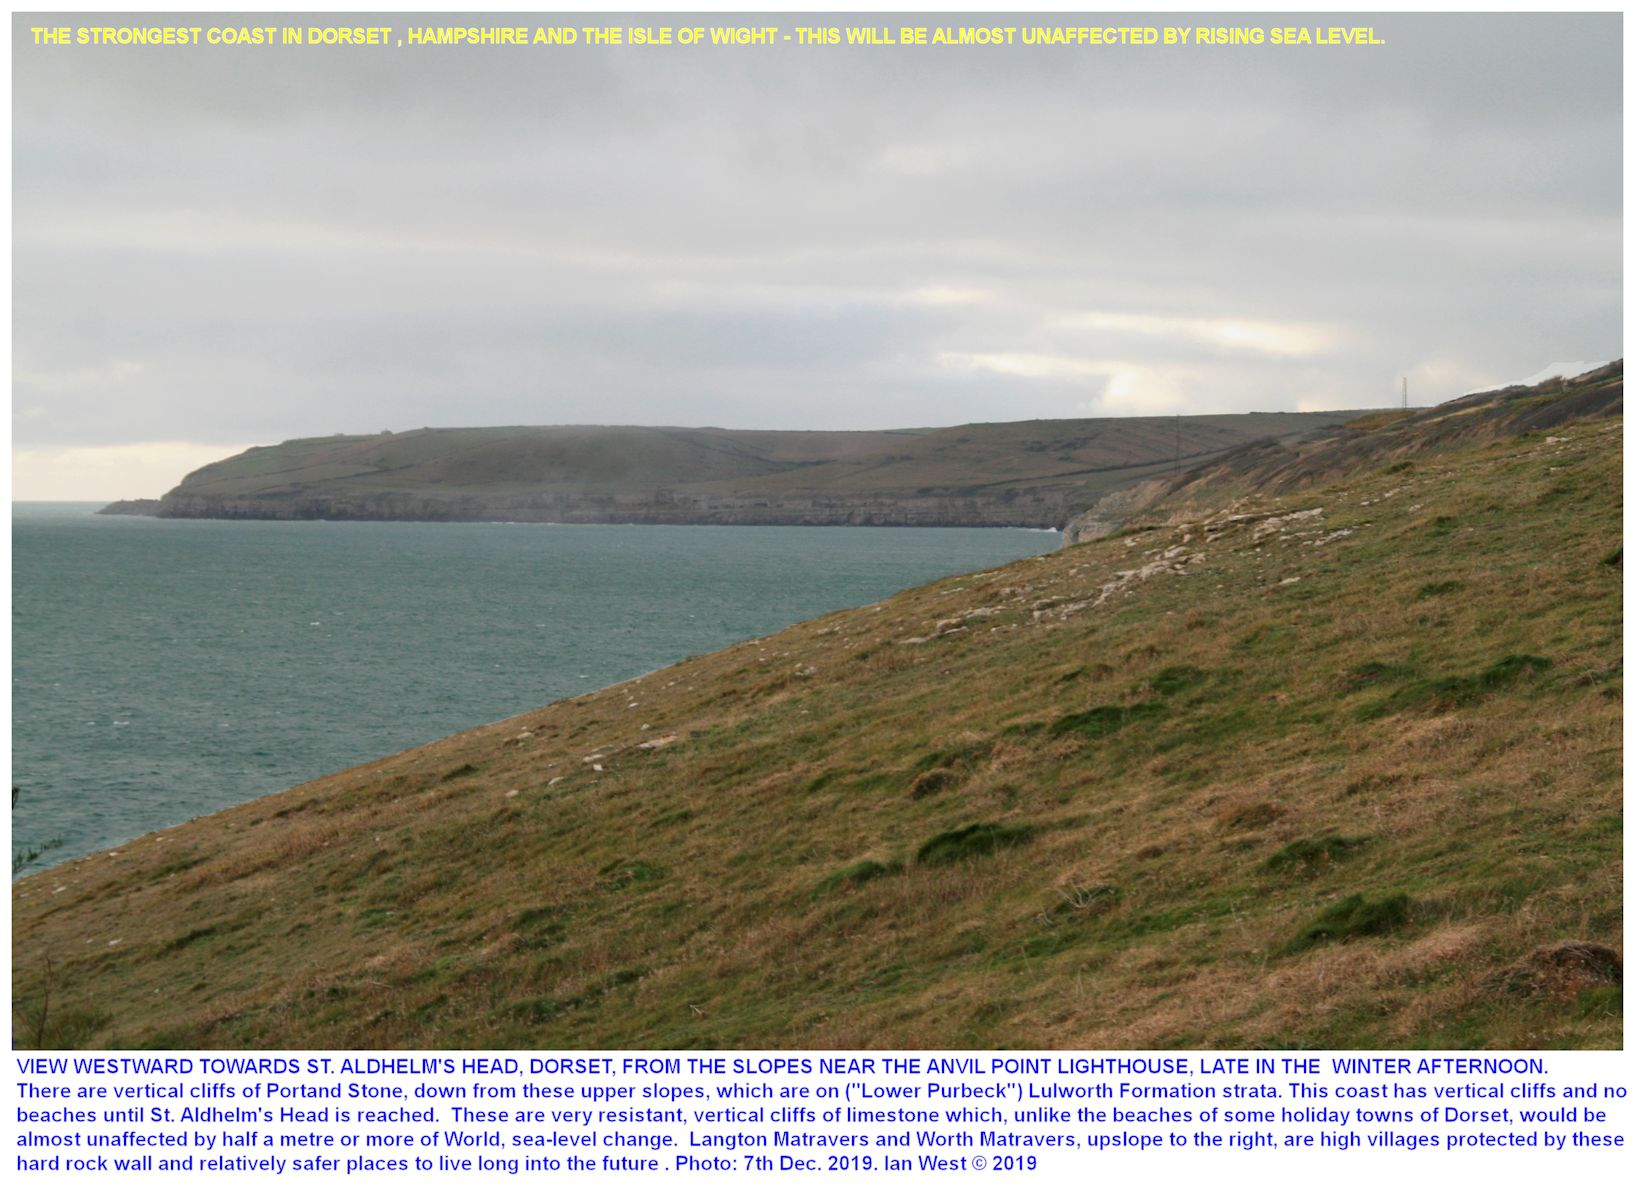 A view of the robust, rocky cliffs of Portland Stone, west of Anvil Point and extending westward to St. Aldhelm's Head, a safe and sturdy, natural defence against rising sea-level, Ian West, late afternoon, 7th December 2019